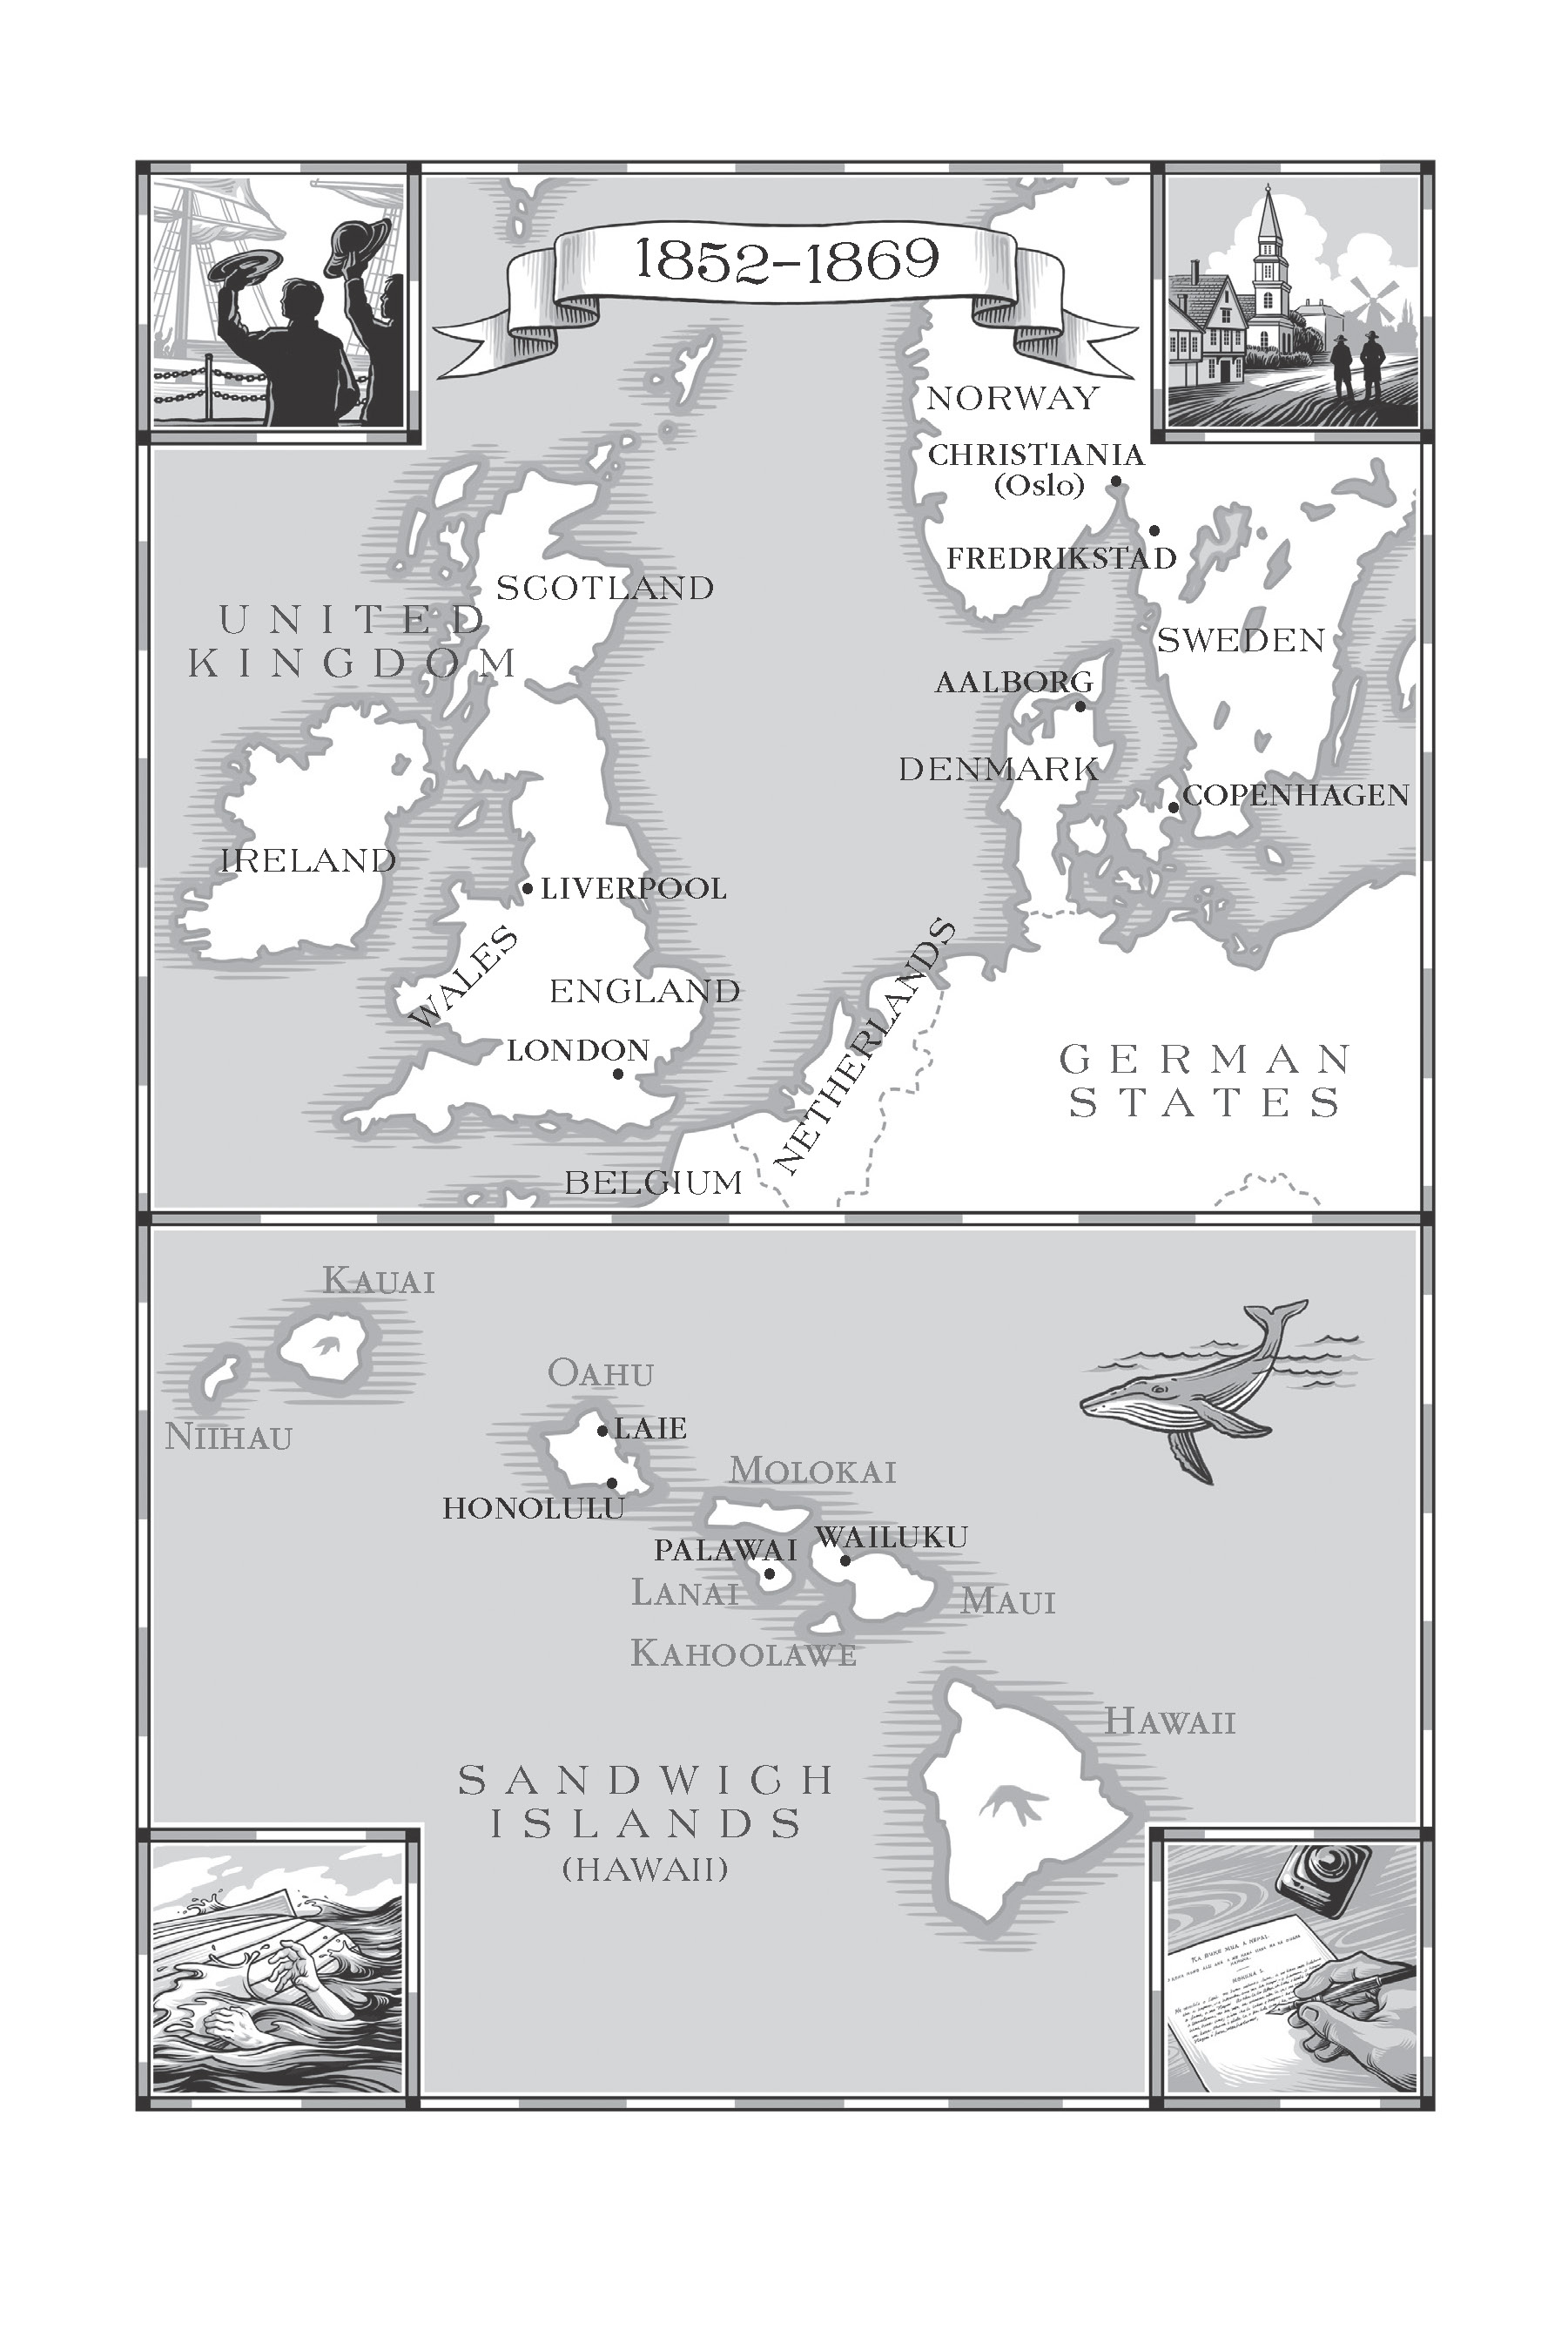 Maps of the overseas locations where early missionaries of the Church were sent.